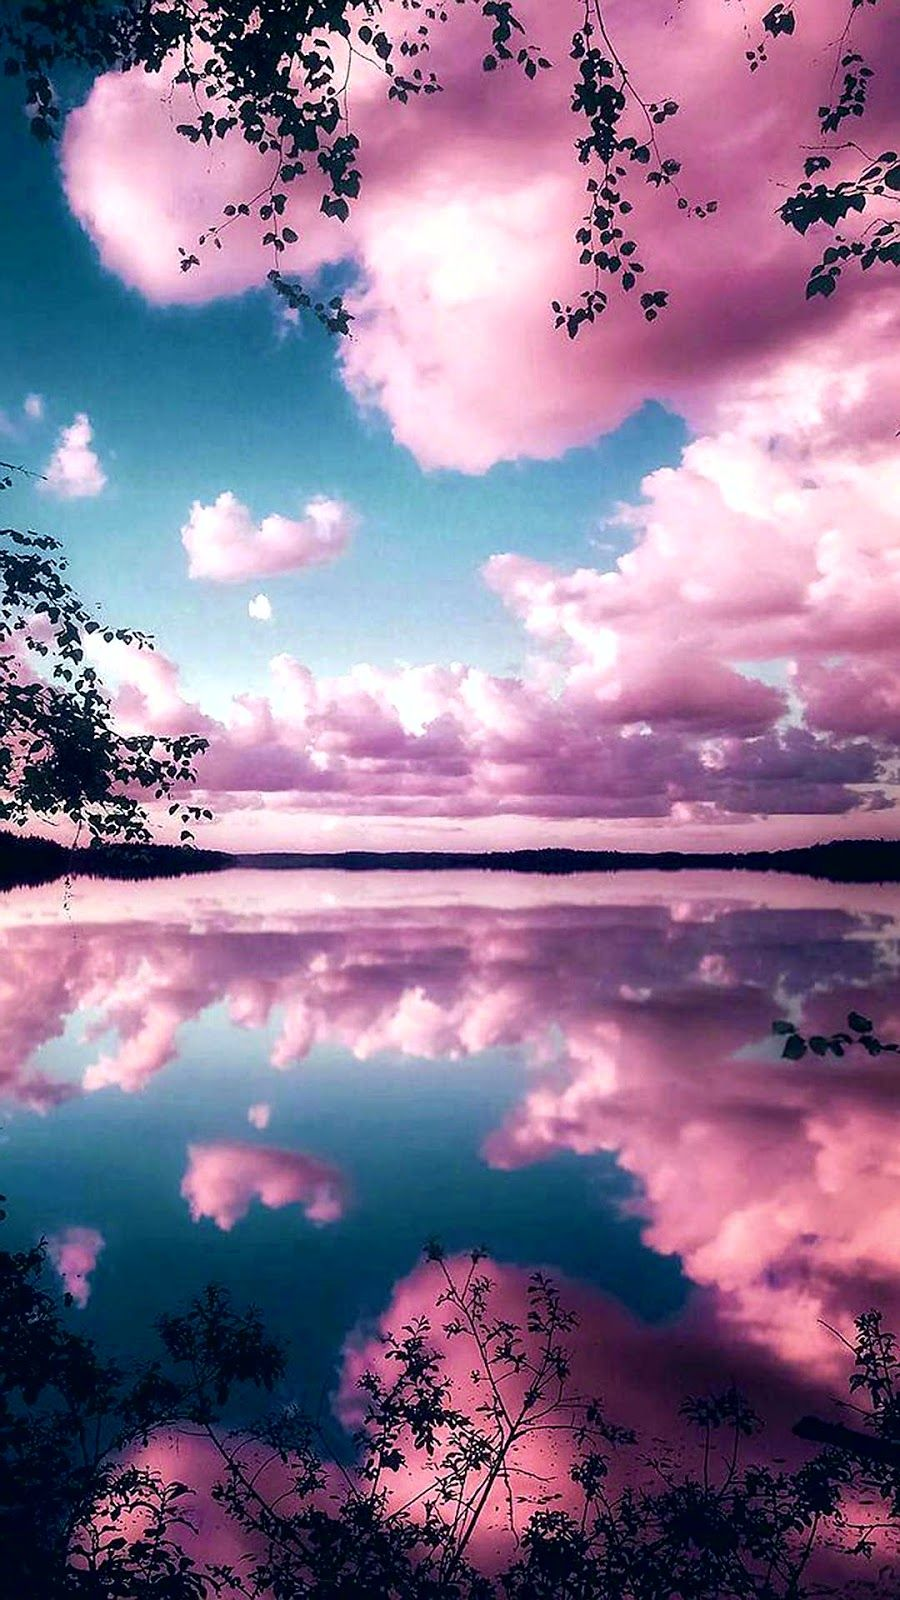 Beautiful Pretty Wonderful Nature Love Outdoors Cloud Wallpaper Beautiful Nature Wallpaper Beautiful Wallpapers